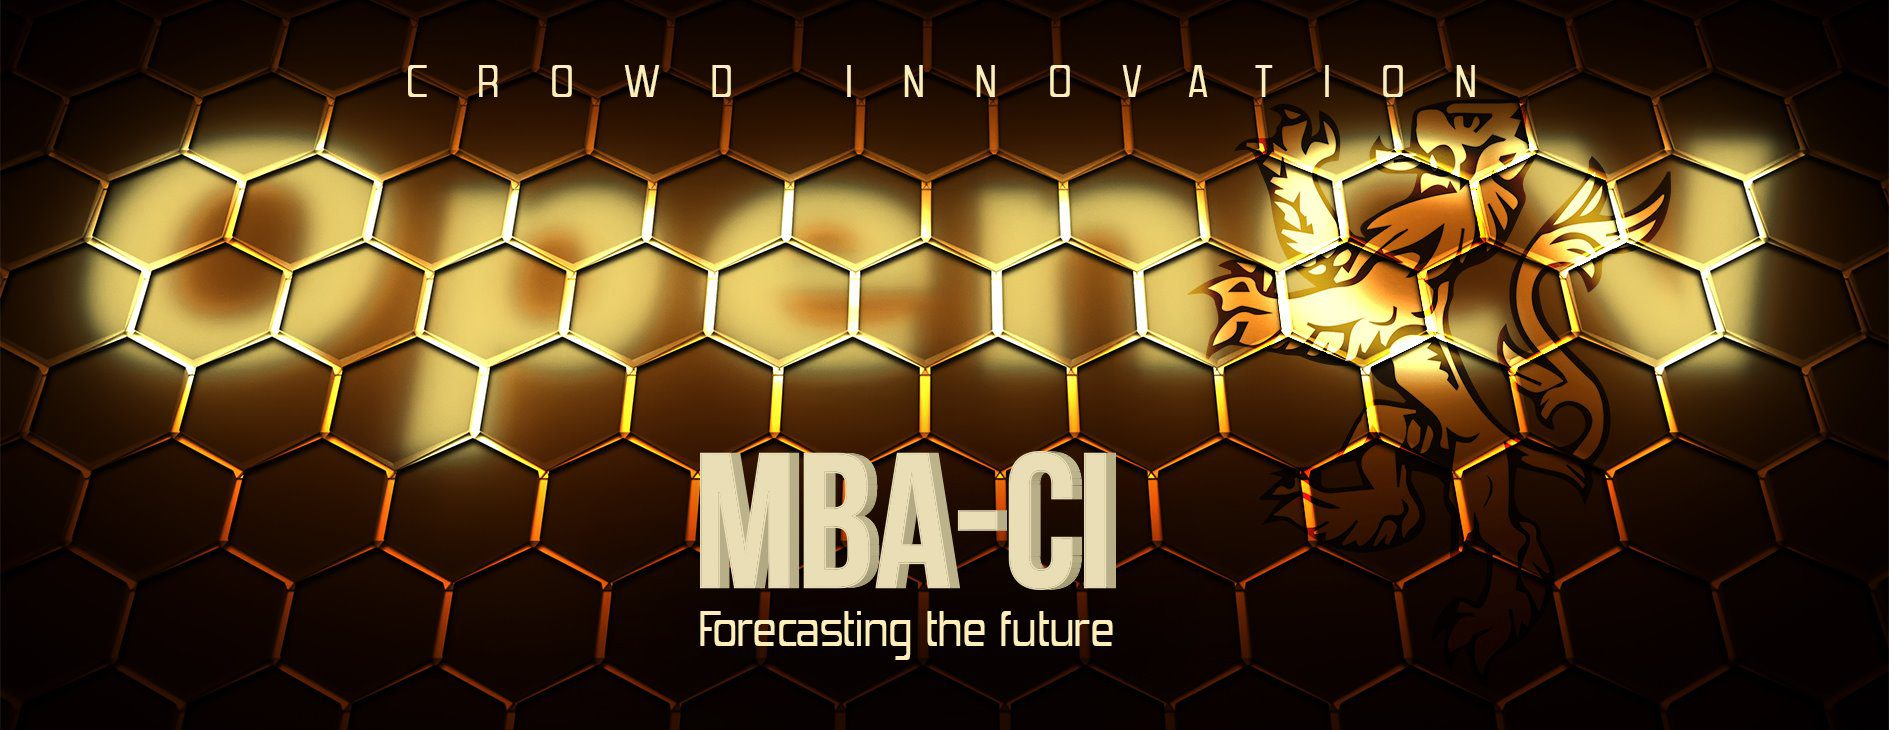 MBA in crowd innovation